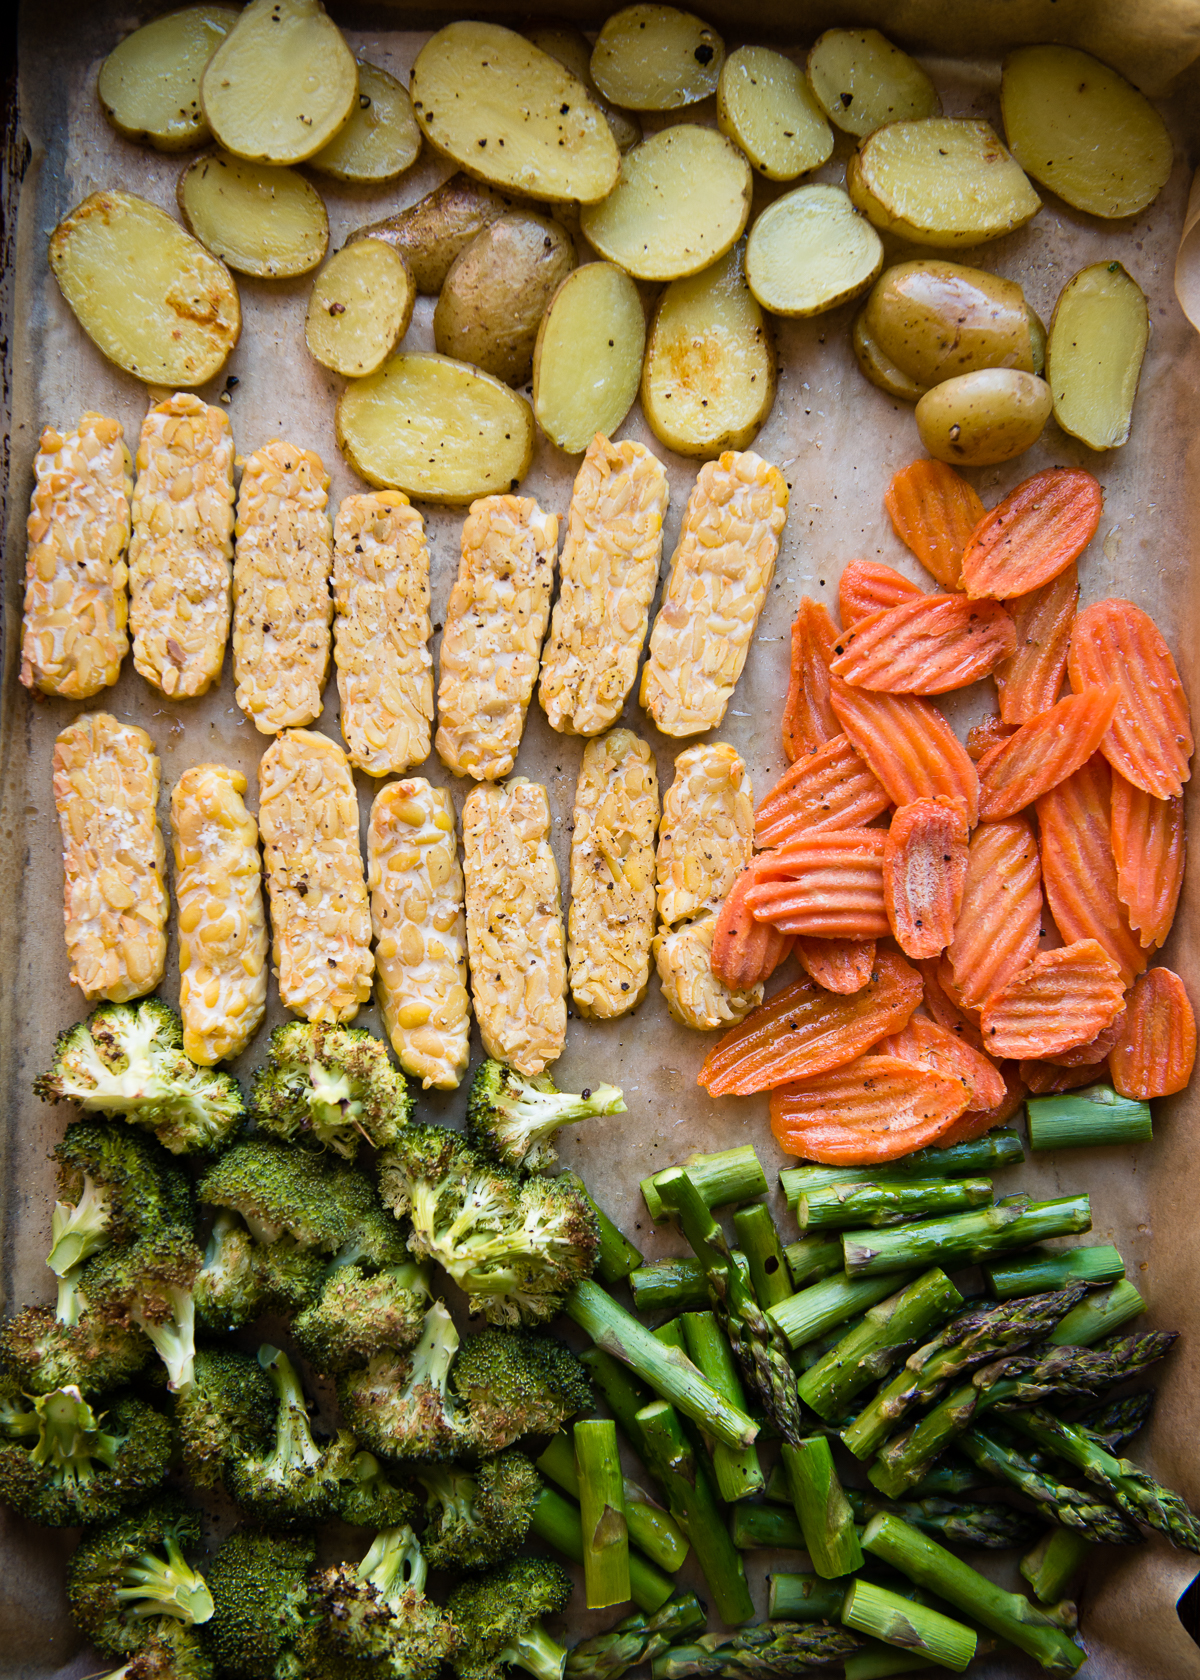 Here's What It Looks Like to Get 8 Servings of Vegetables in a Day